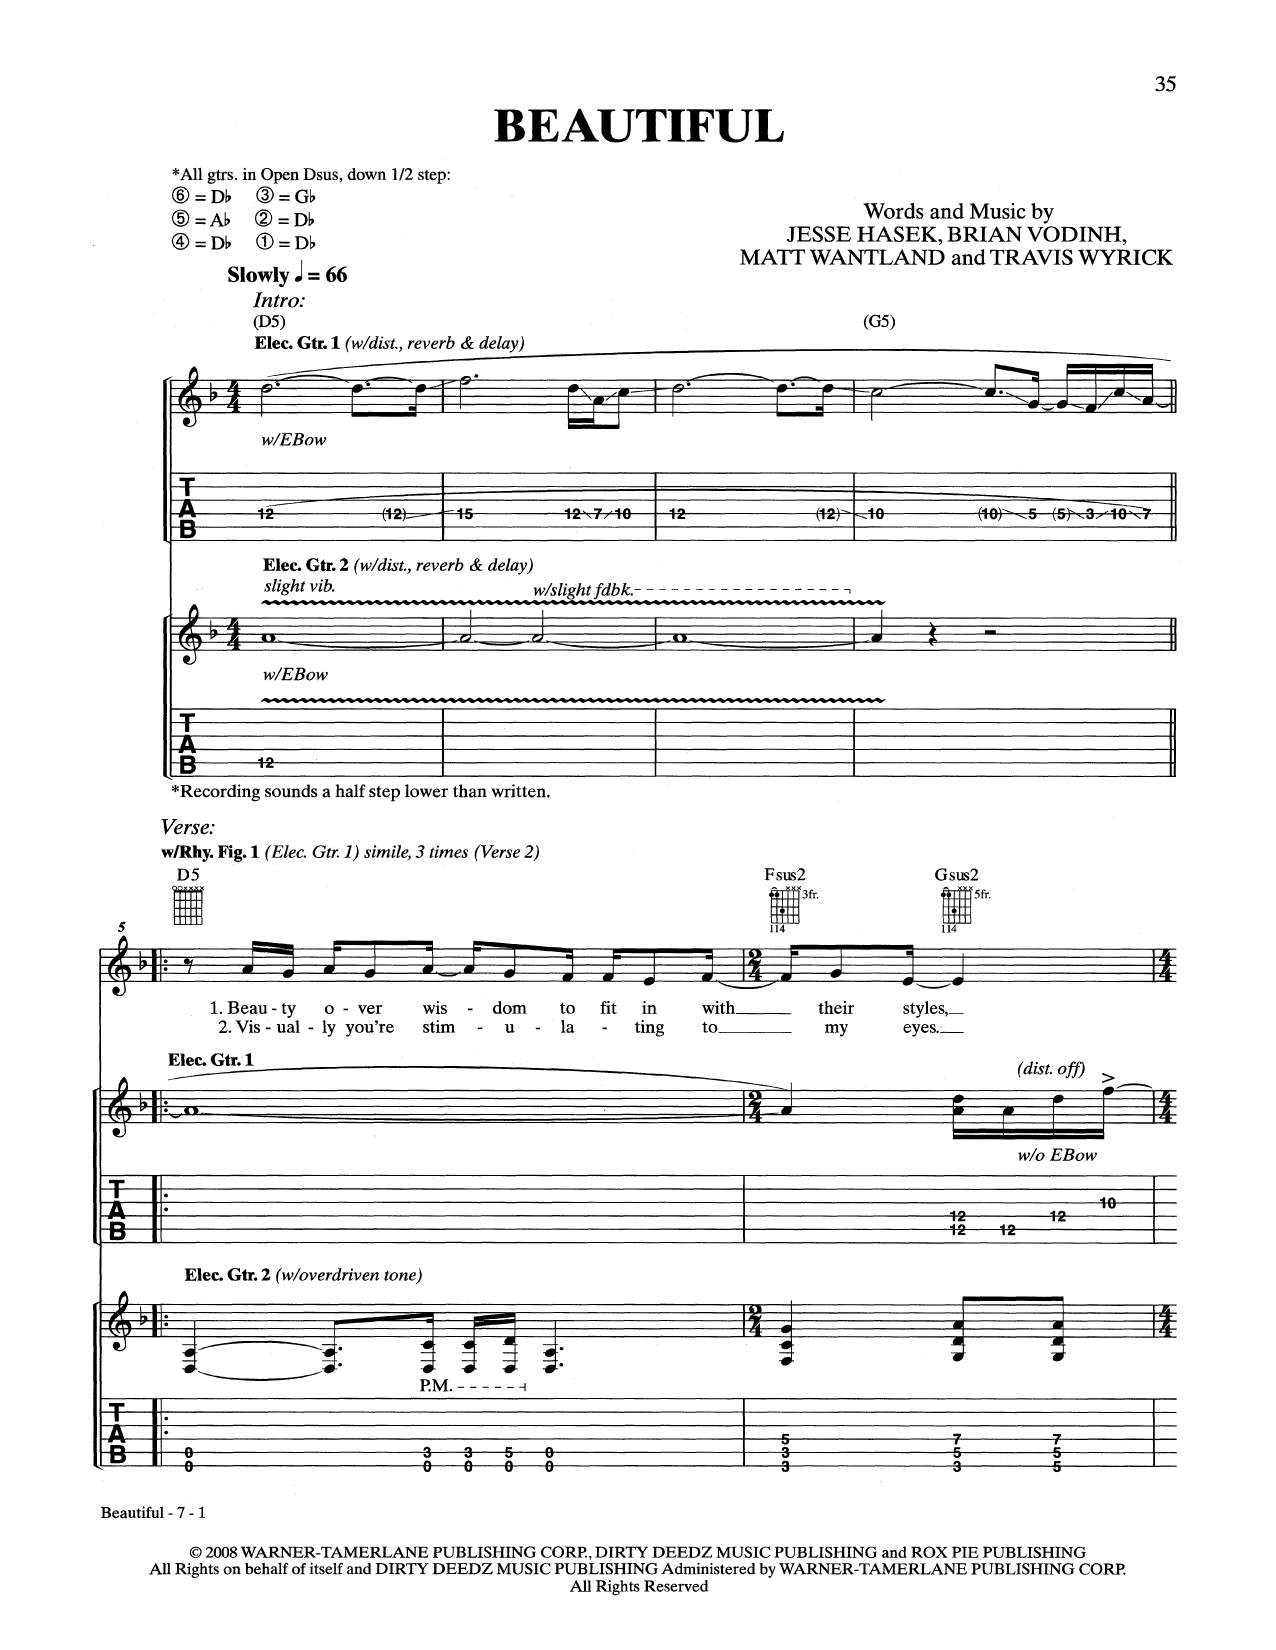 10 Years Beautiful sheet music notes and chords. Download Printable PDF.